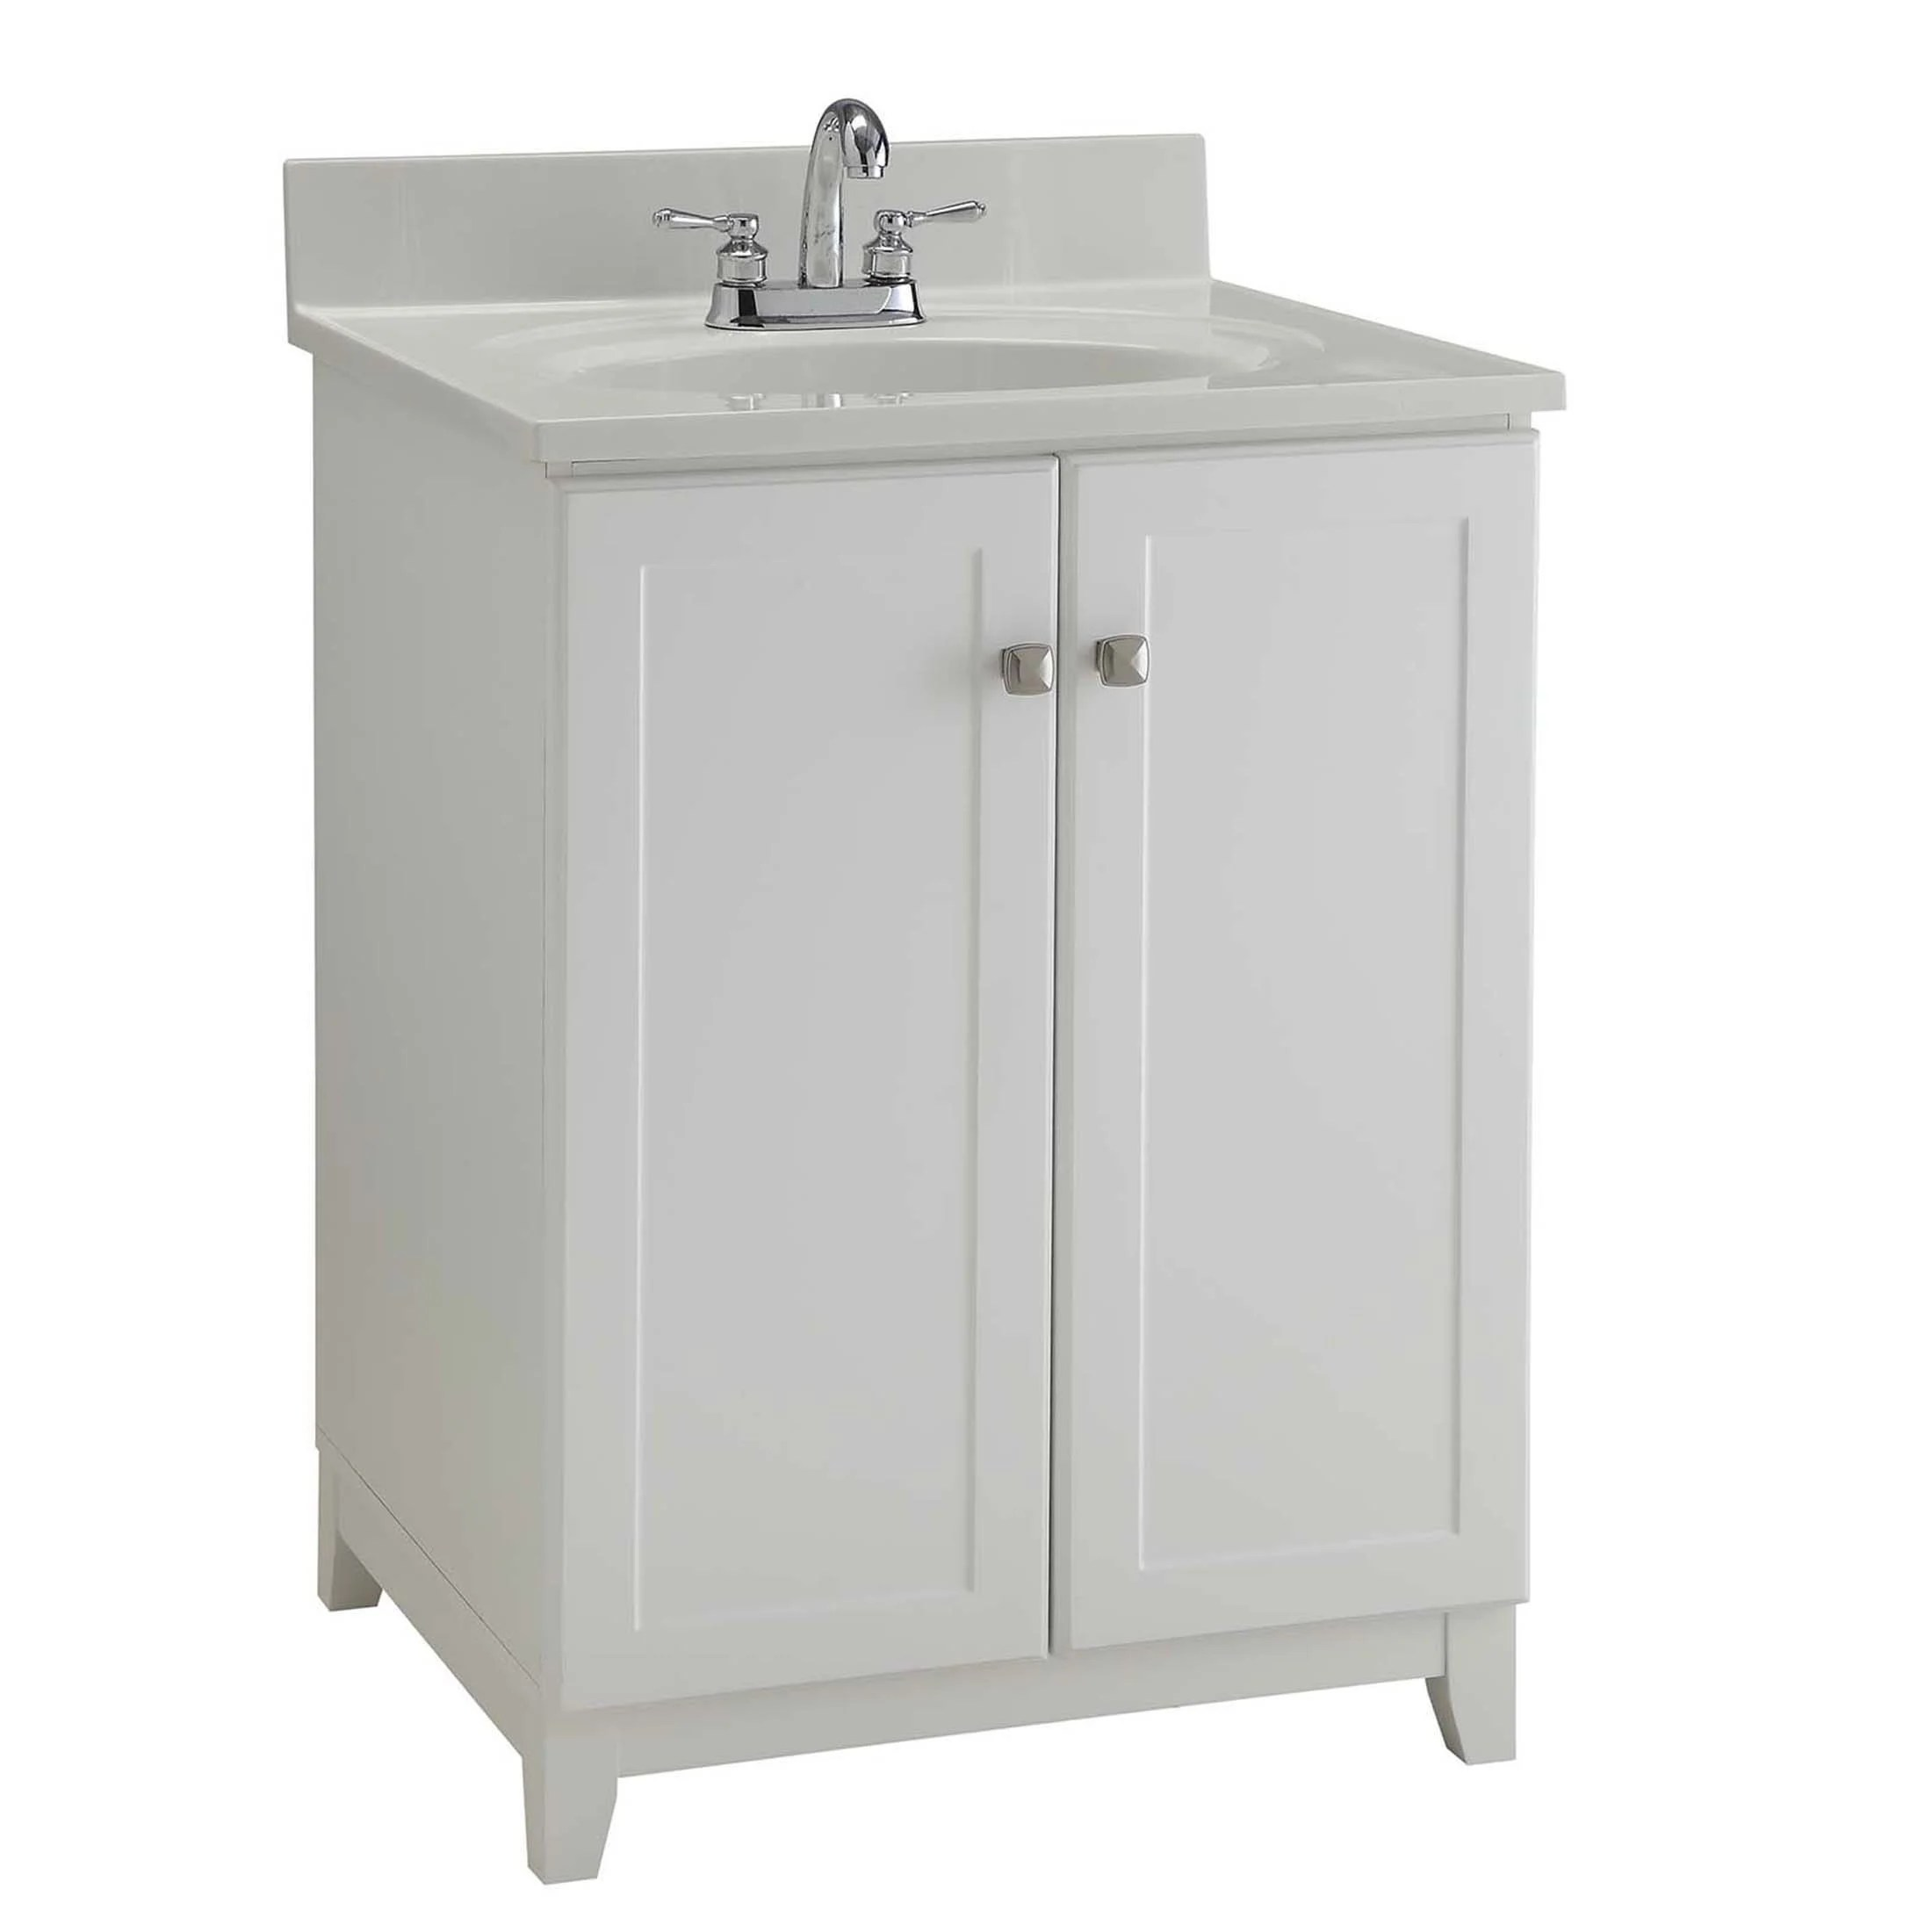 Design House Vanity Design House 33 Quot Single Bathroom Vanity Base Wayfair Supply